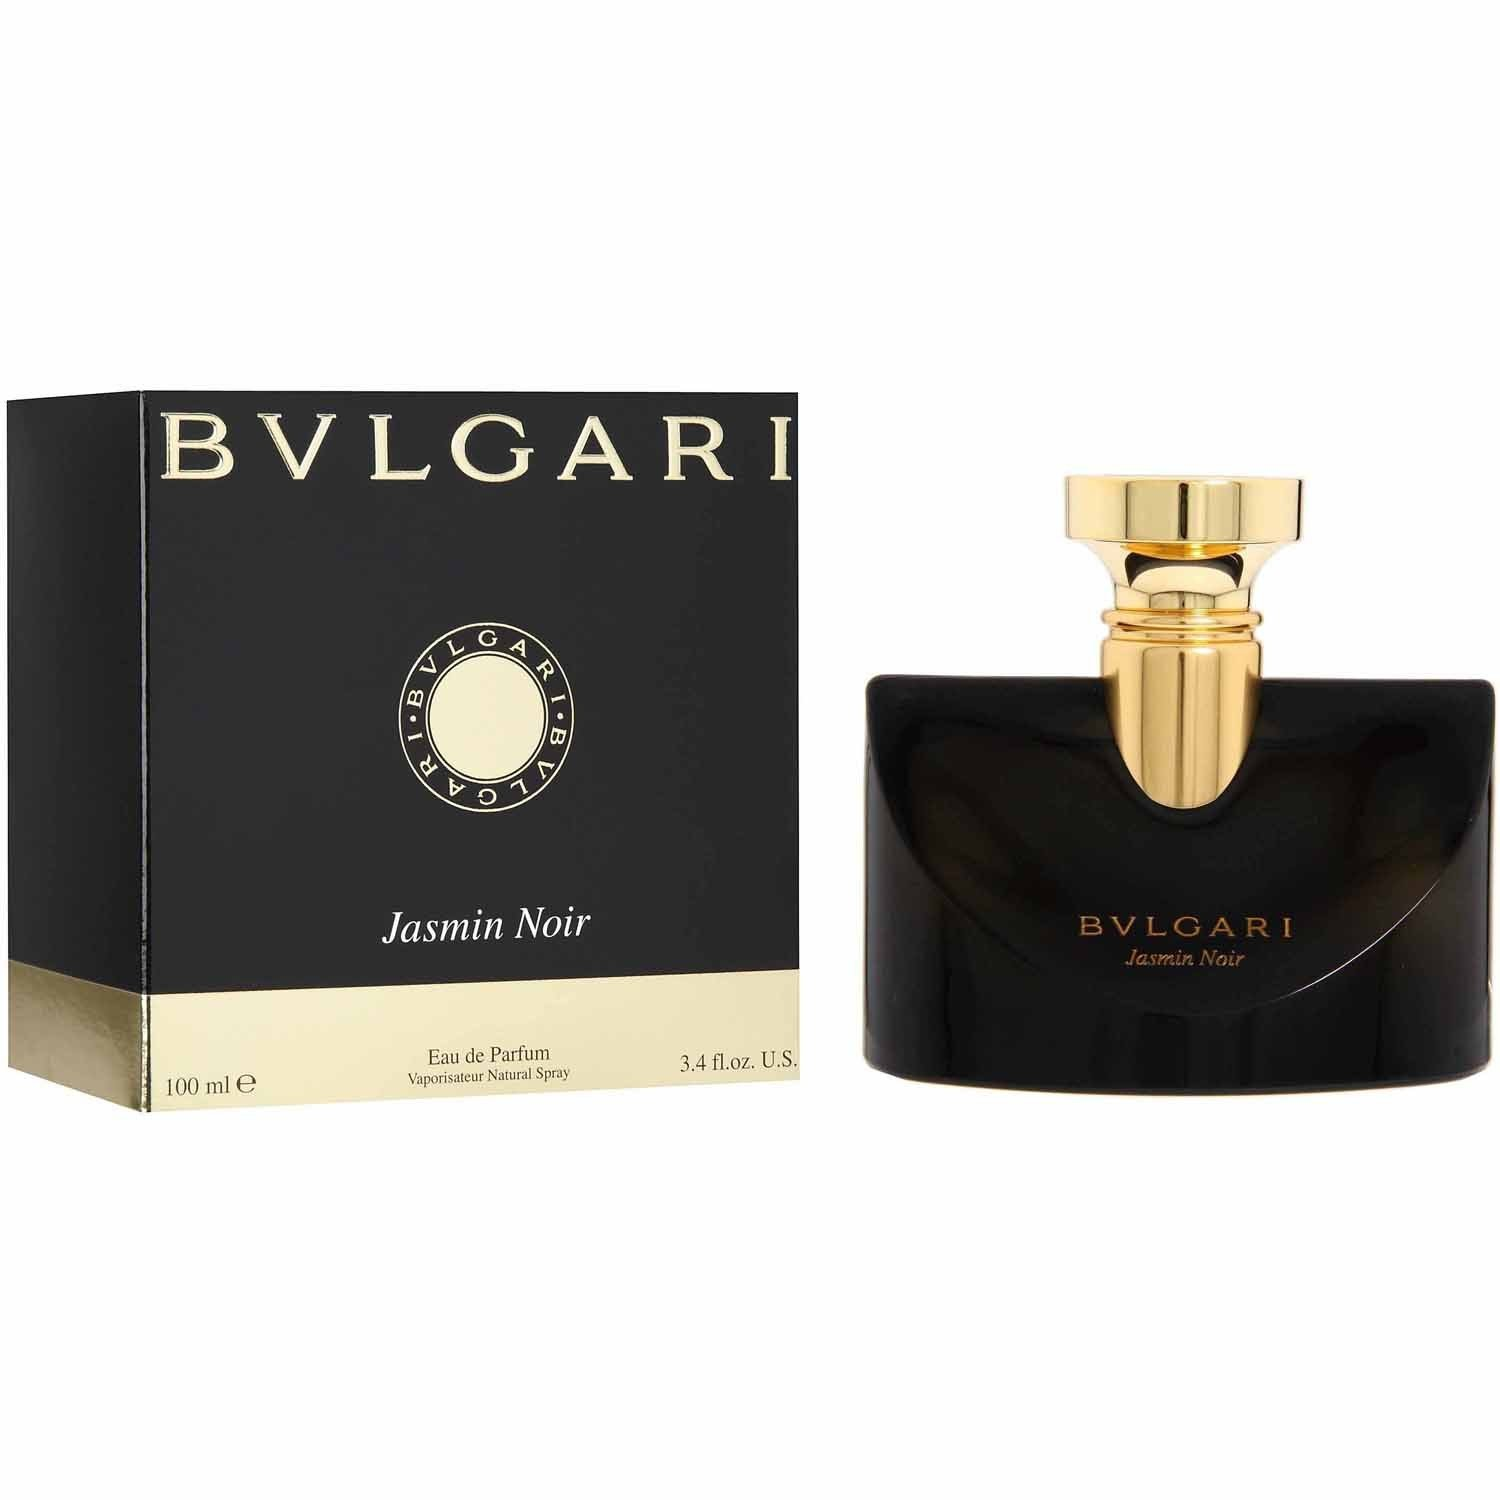 Bvlgari Jasmin Noir by Bvlgari for Women - 3.4 Ounce EDP Spray